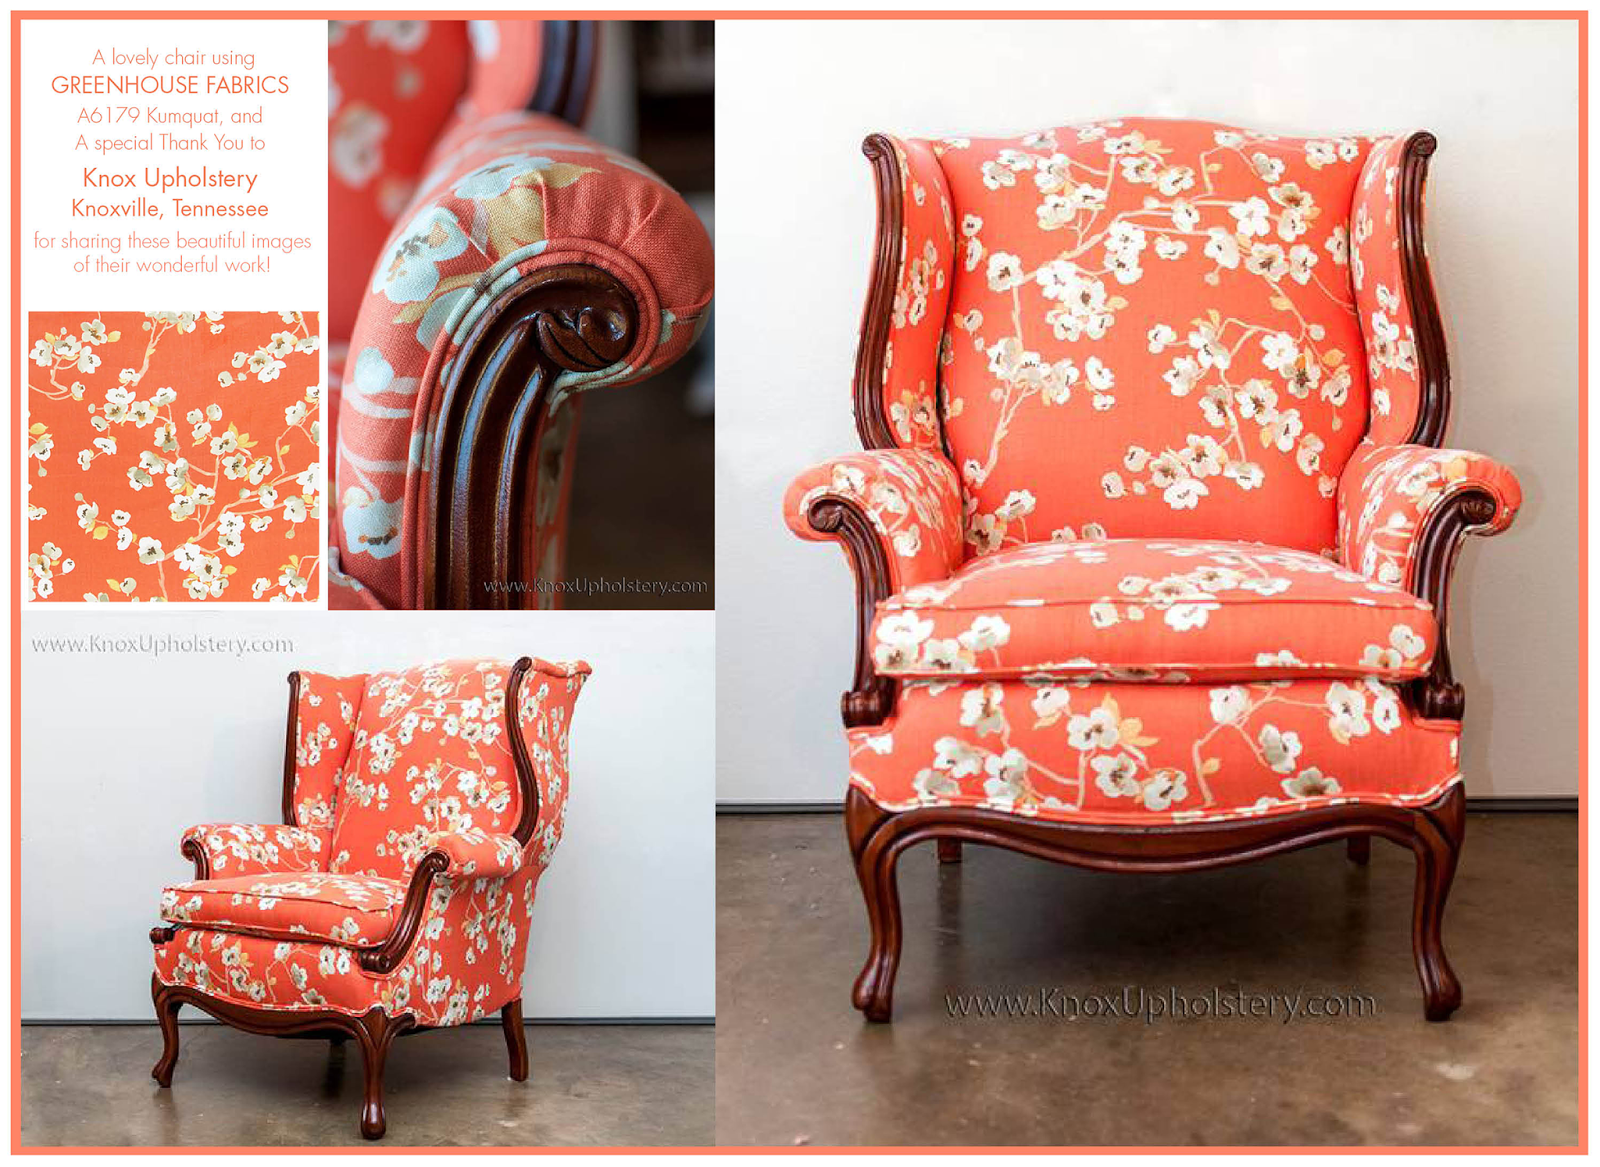 https://www.greenhousefabrics.com/fabric/a6179-kumquat